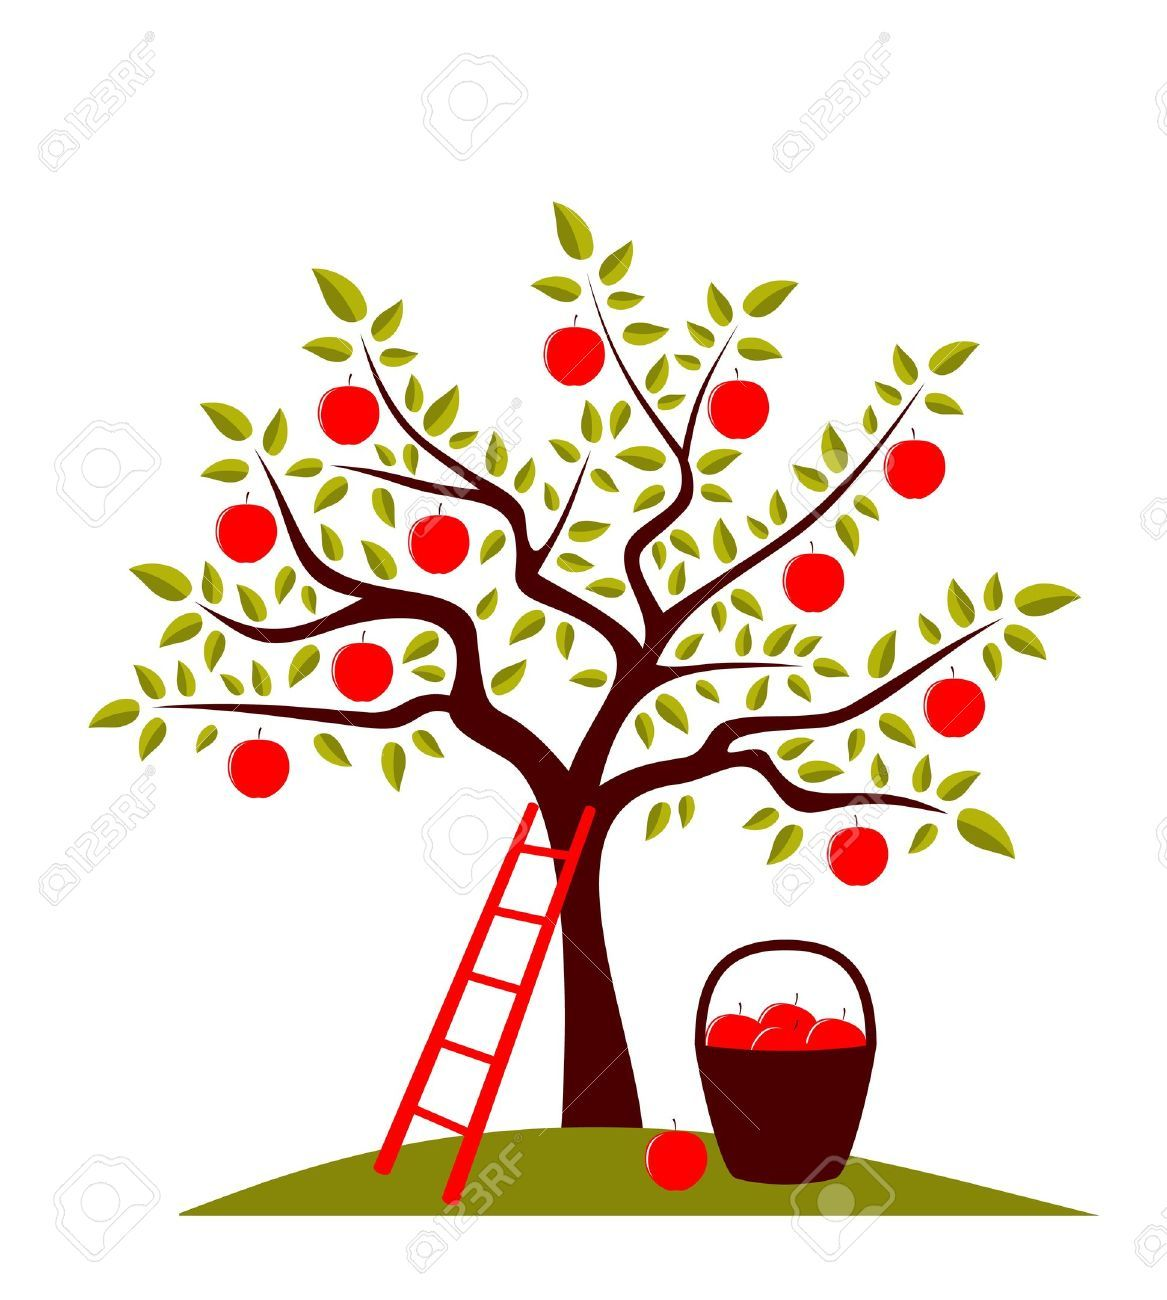 apple tree images  stock pictures  royalty free apple tree photos puita pinterest yom kippur clip art black and white free yom kippur clipart black and white